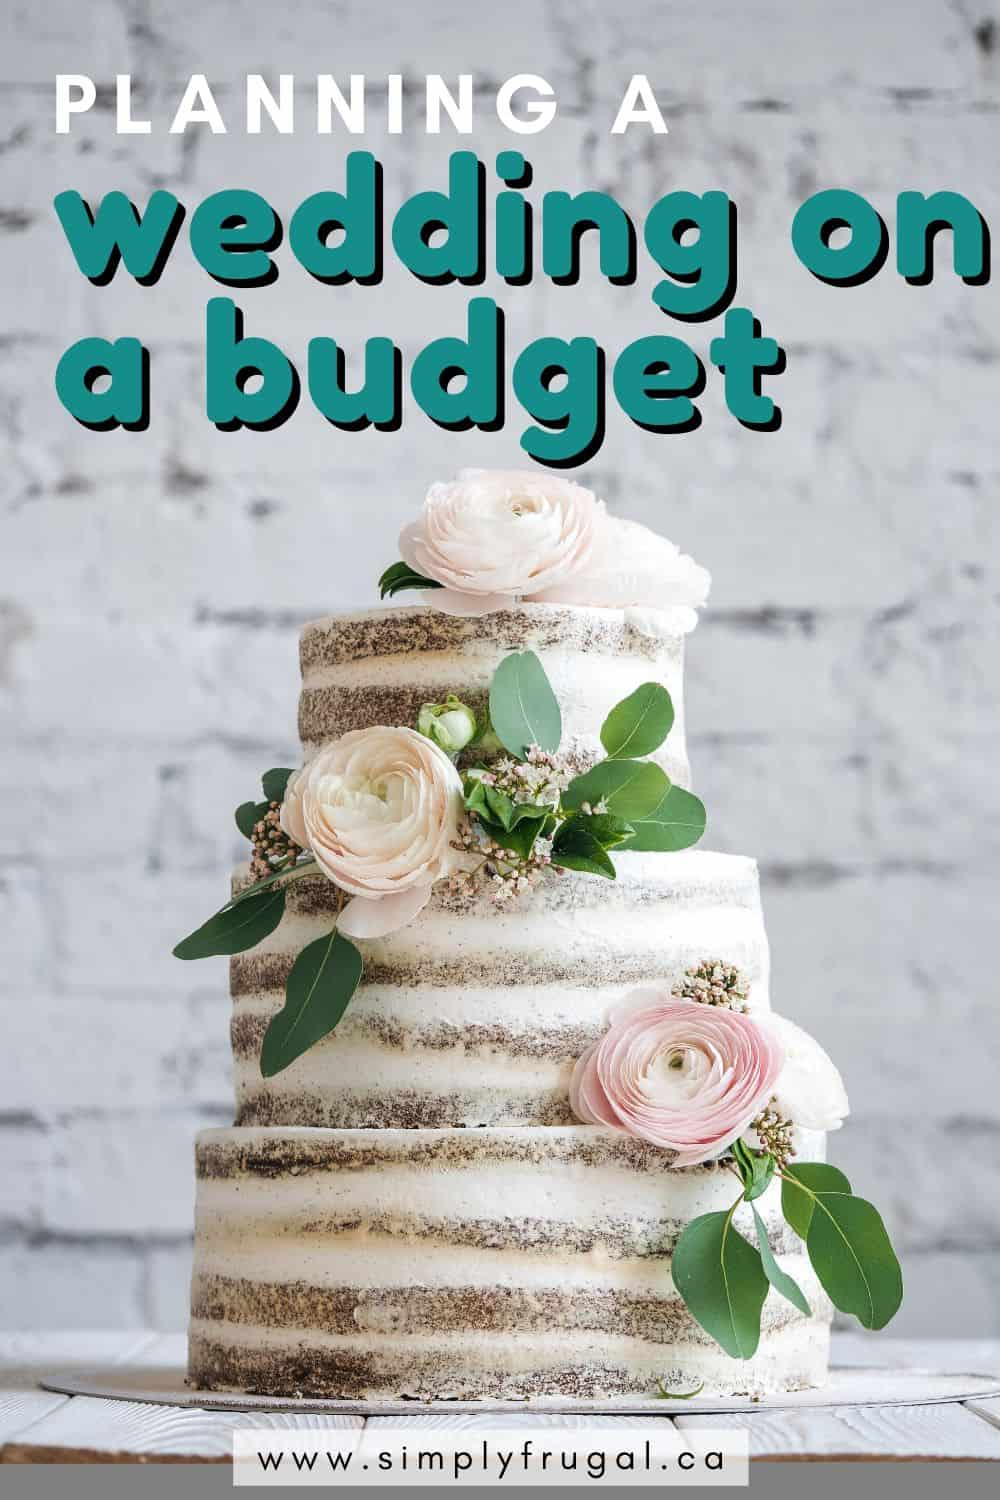 This post is for all of you frugal brides interested in planning a wedding on a budget!